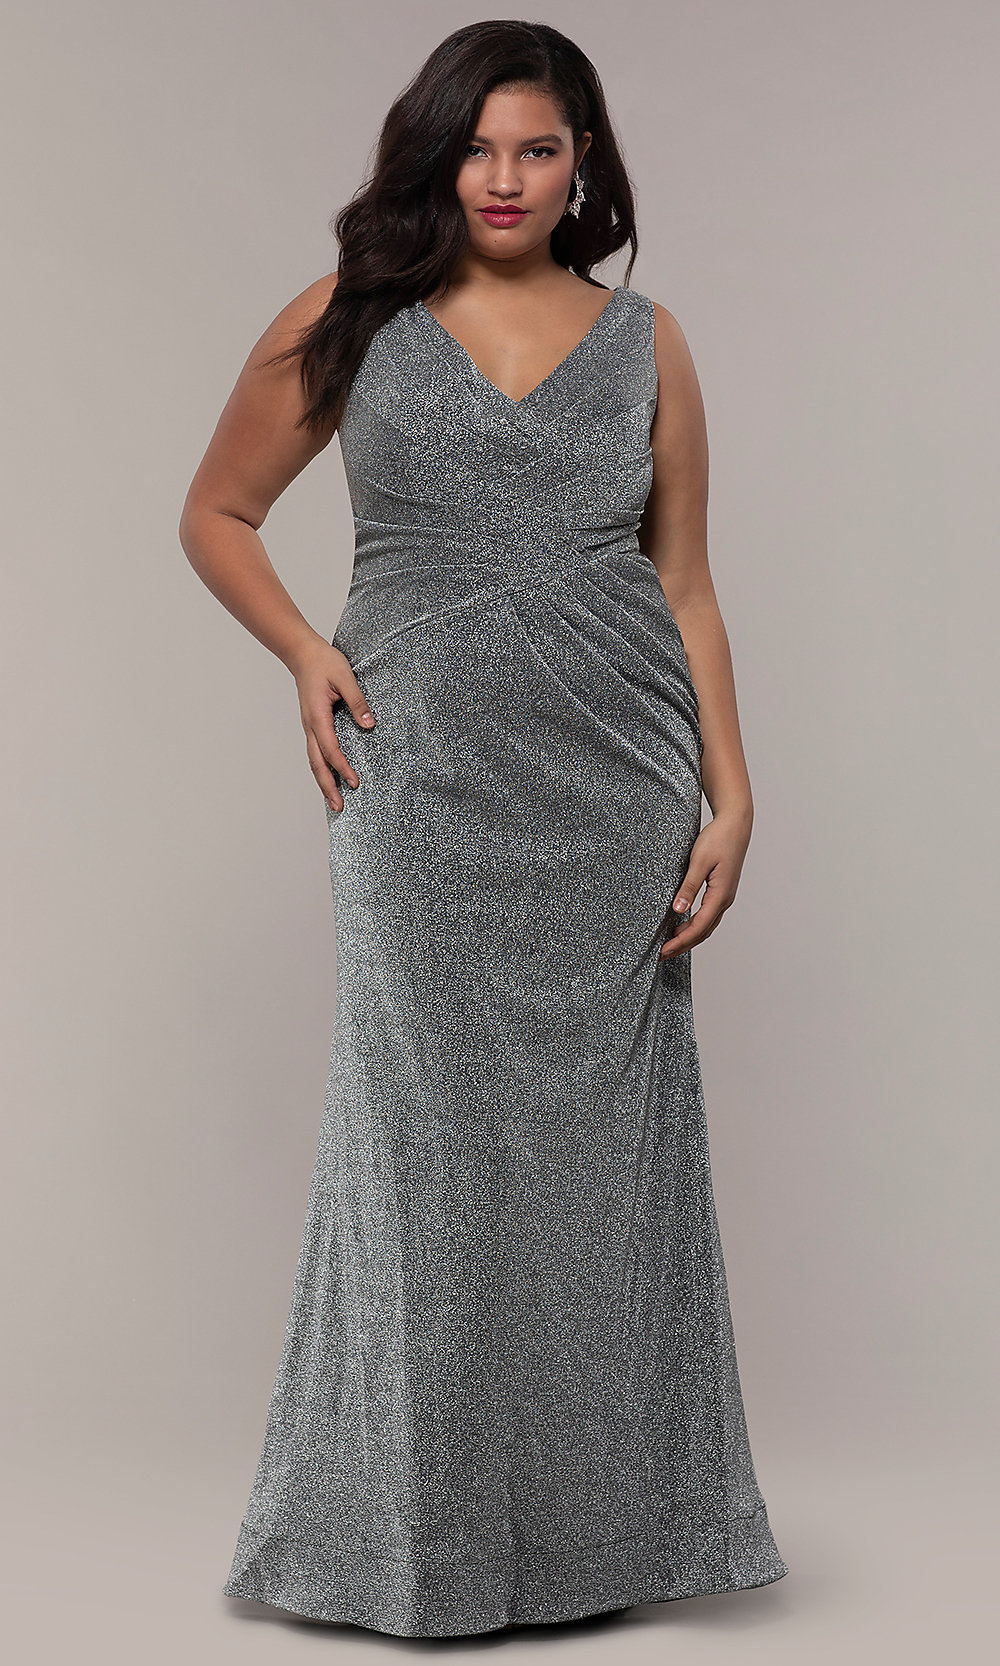 Glitter-Knit Plus-Size Long Prom Dress by PromGirl